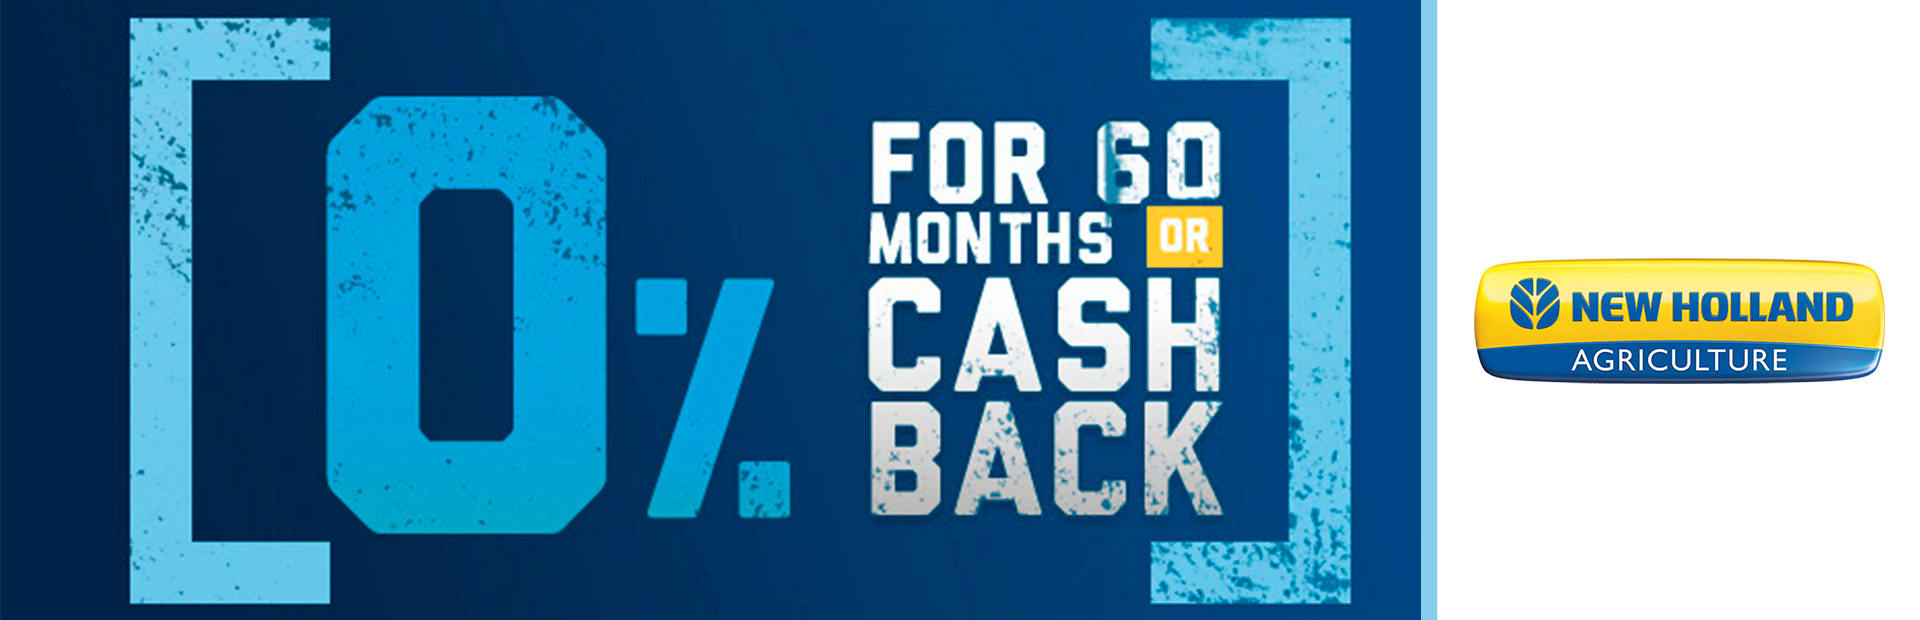 New Holland Construction: 0% for 60 OR Cash Back